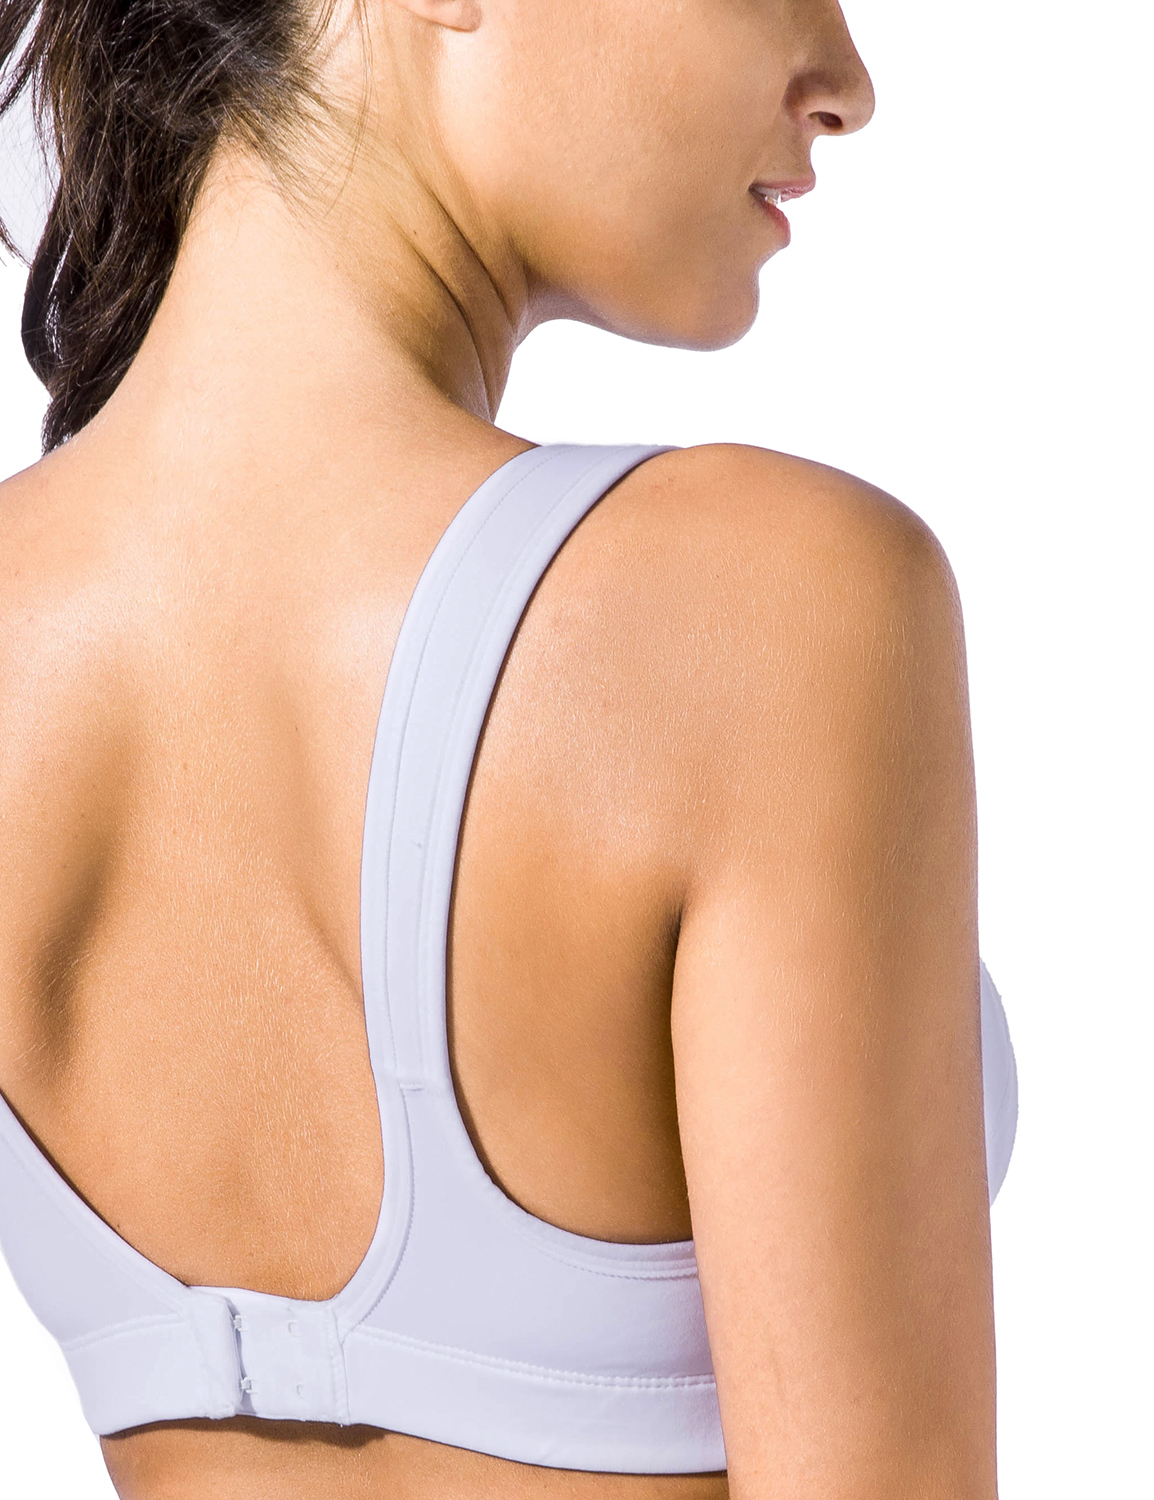 Women-039-s-Bounce-Control-Wire-Free-High-Impact-Max-Support-Sports-Bra thumbnail 14